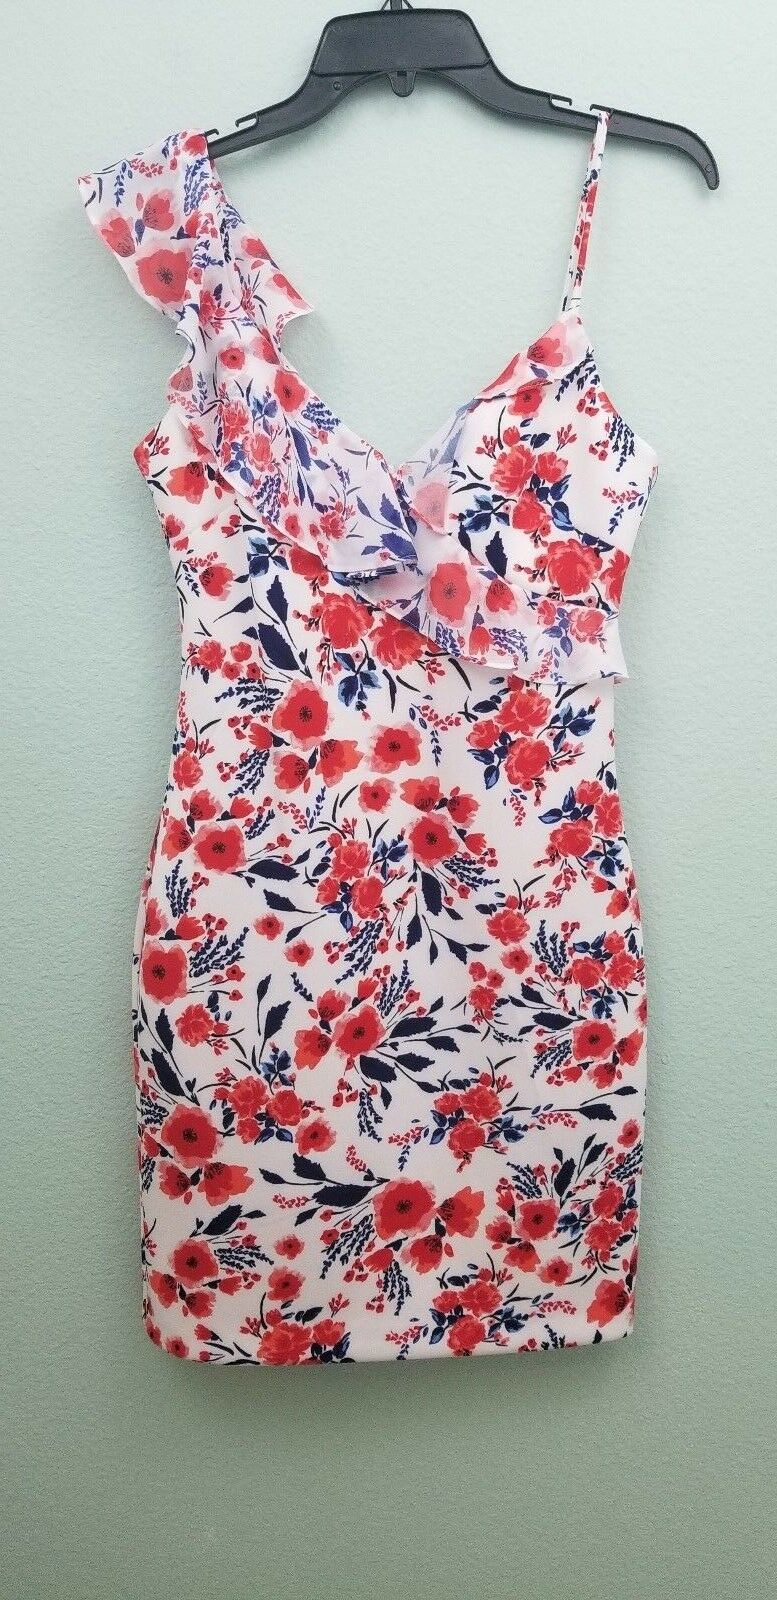 GUESS LOS ANGELES WHITE FLORAL DRESS, SIZE 4, NWT  108